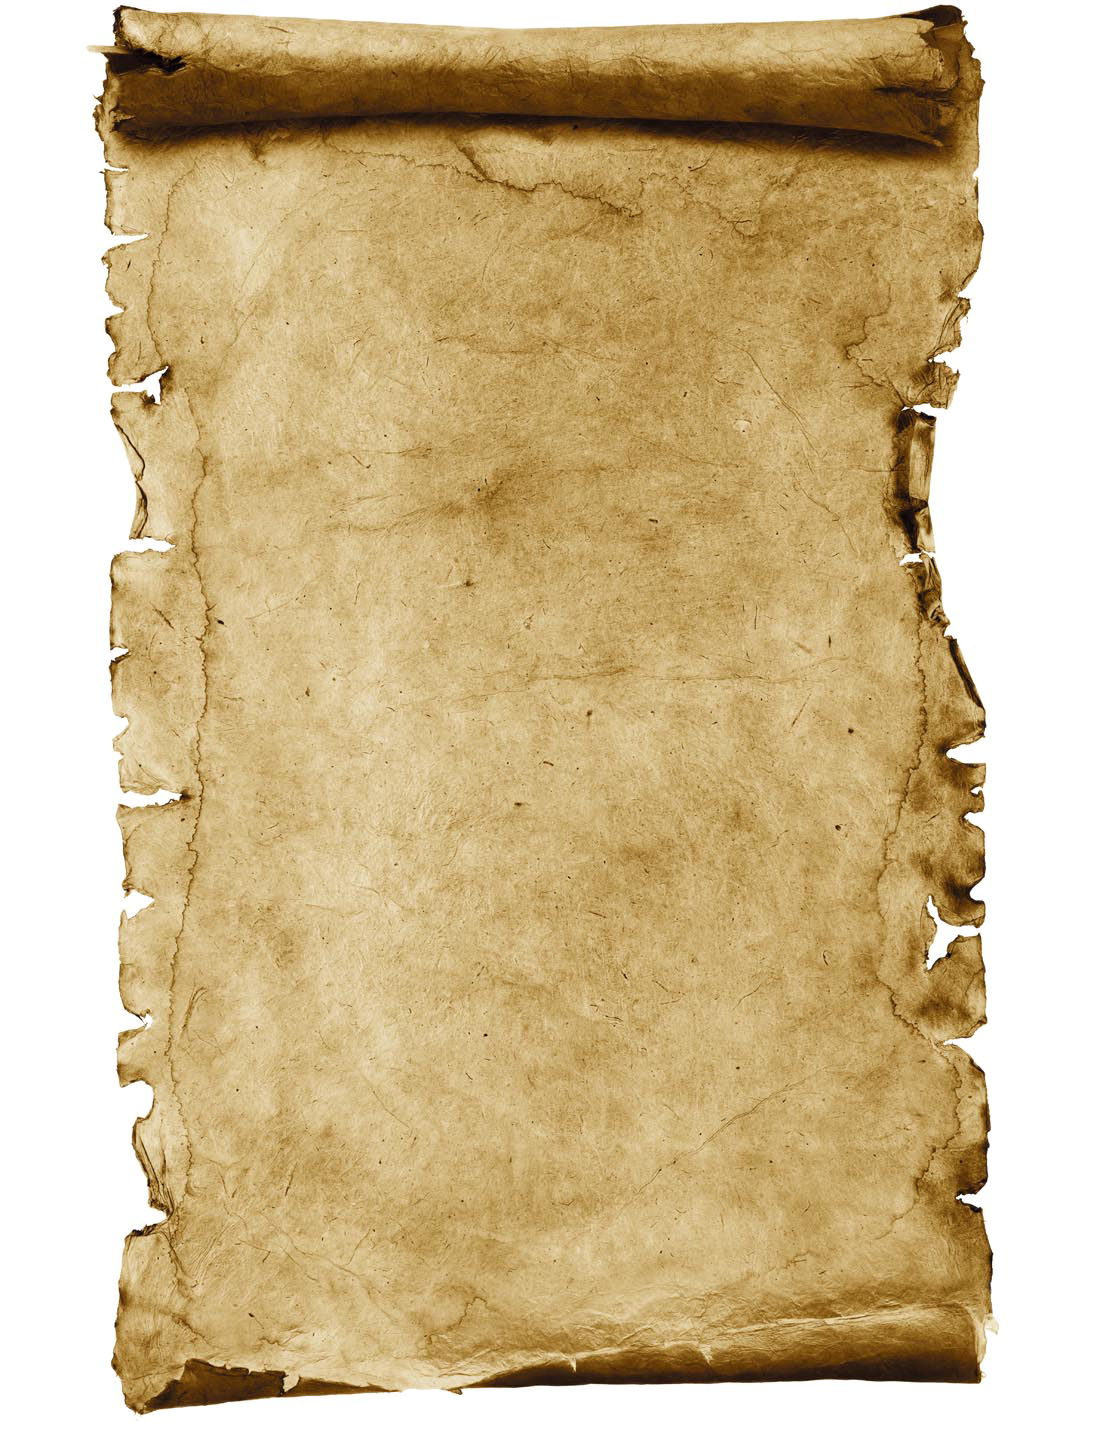 Parchment scroll png. Paper stock photography kraft